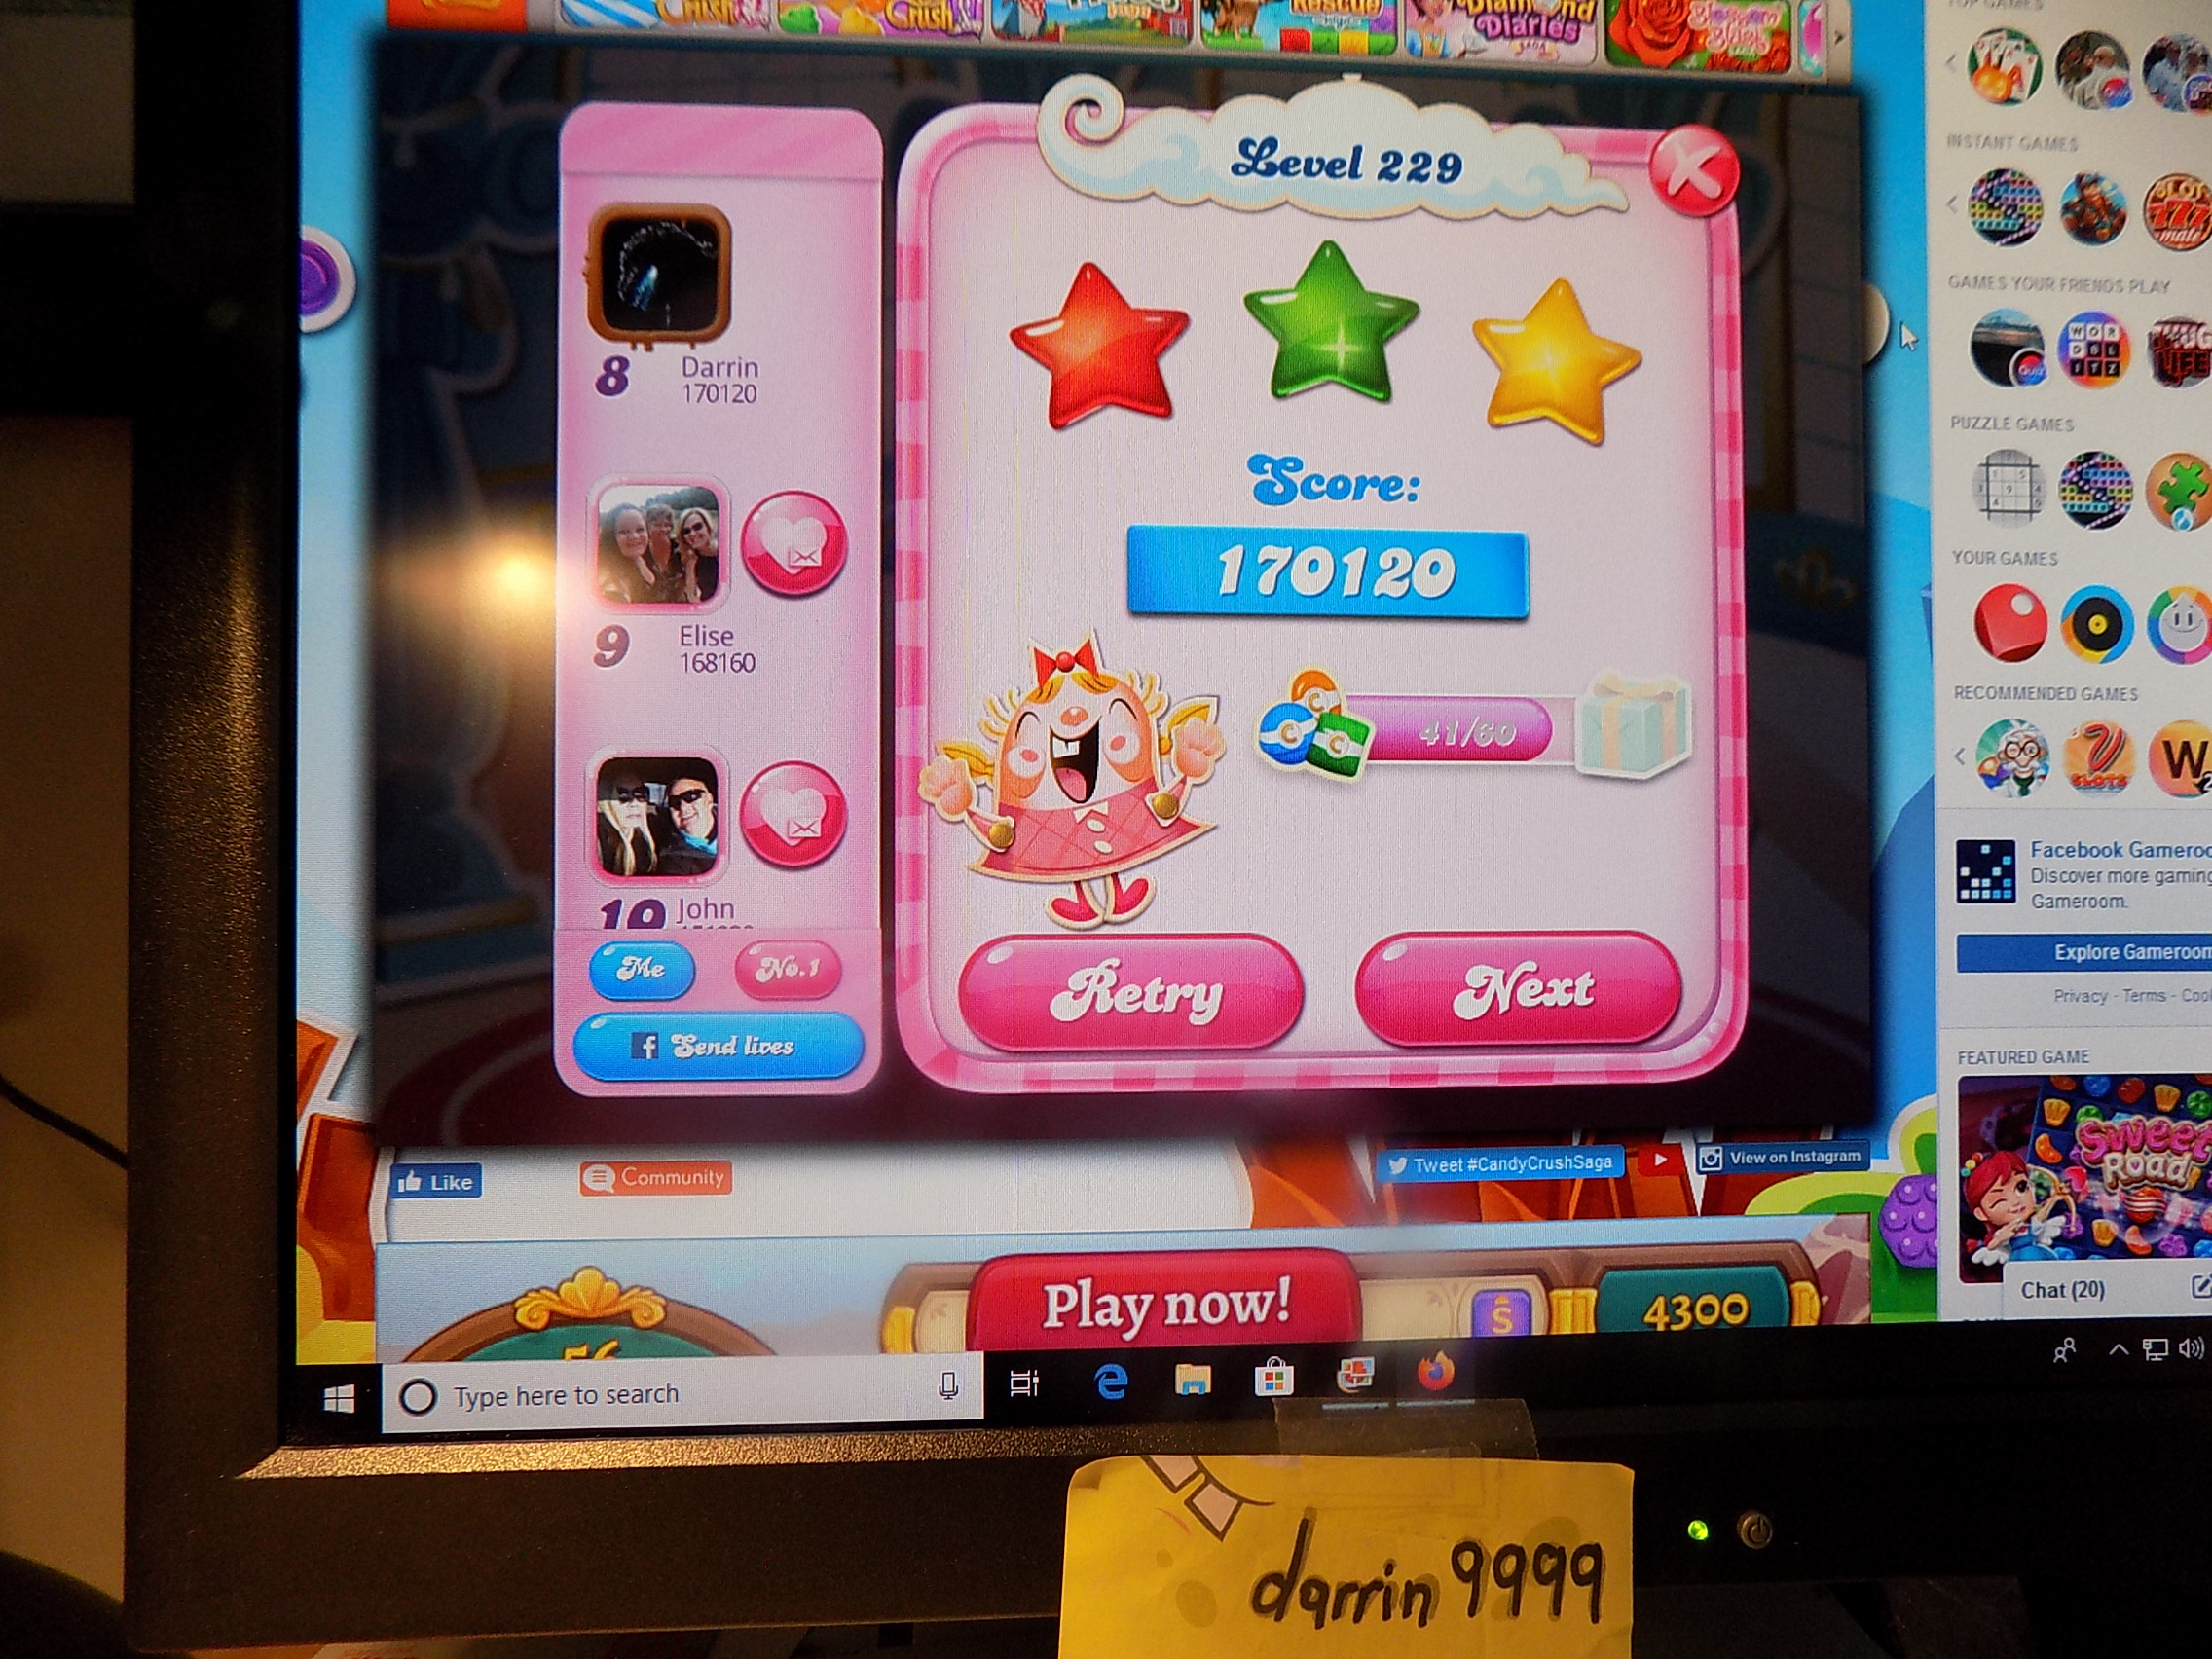 darrin9999: Candy Crush Saga: Level 229 (Web) 170,120 points on 2019-11-18 07:00:17